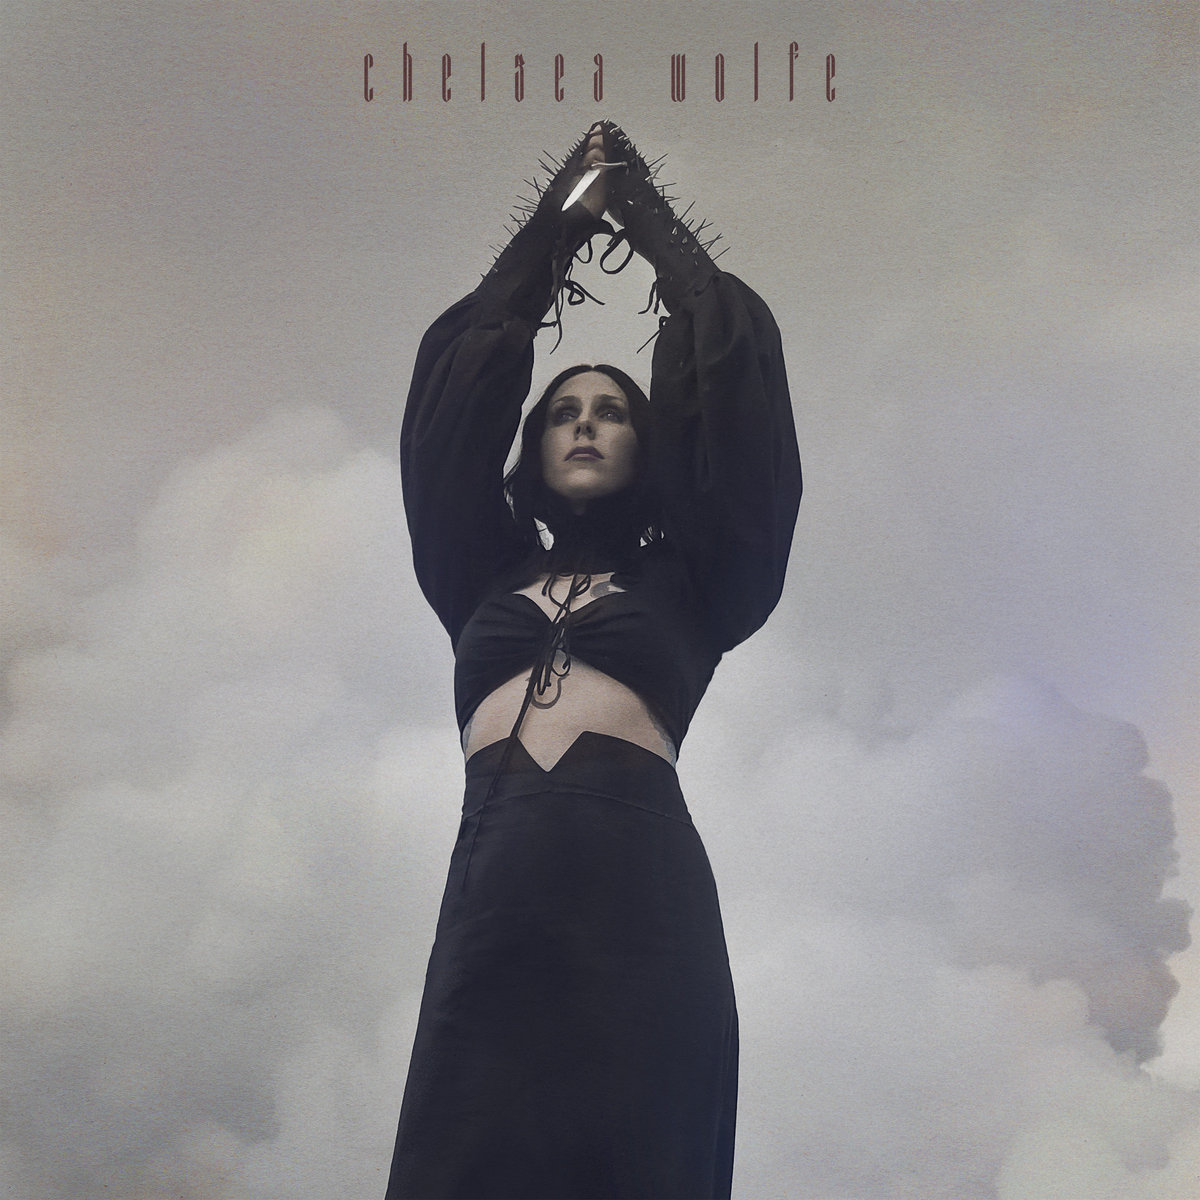 Birth of Violence by Chelsea Wolfe image